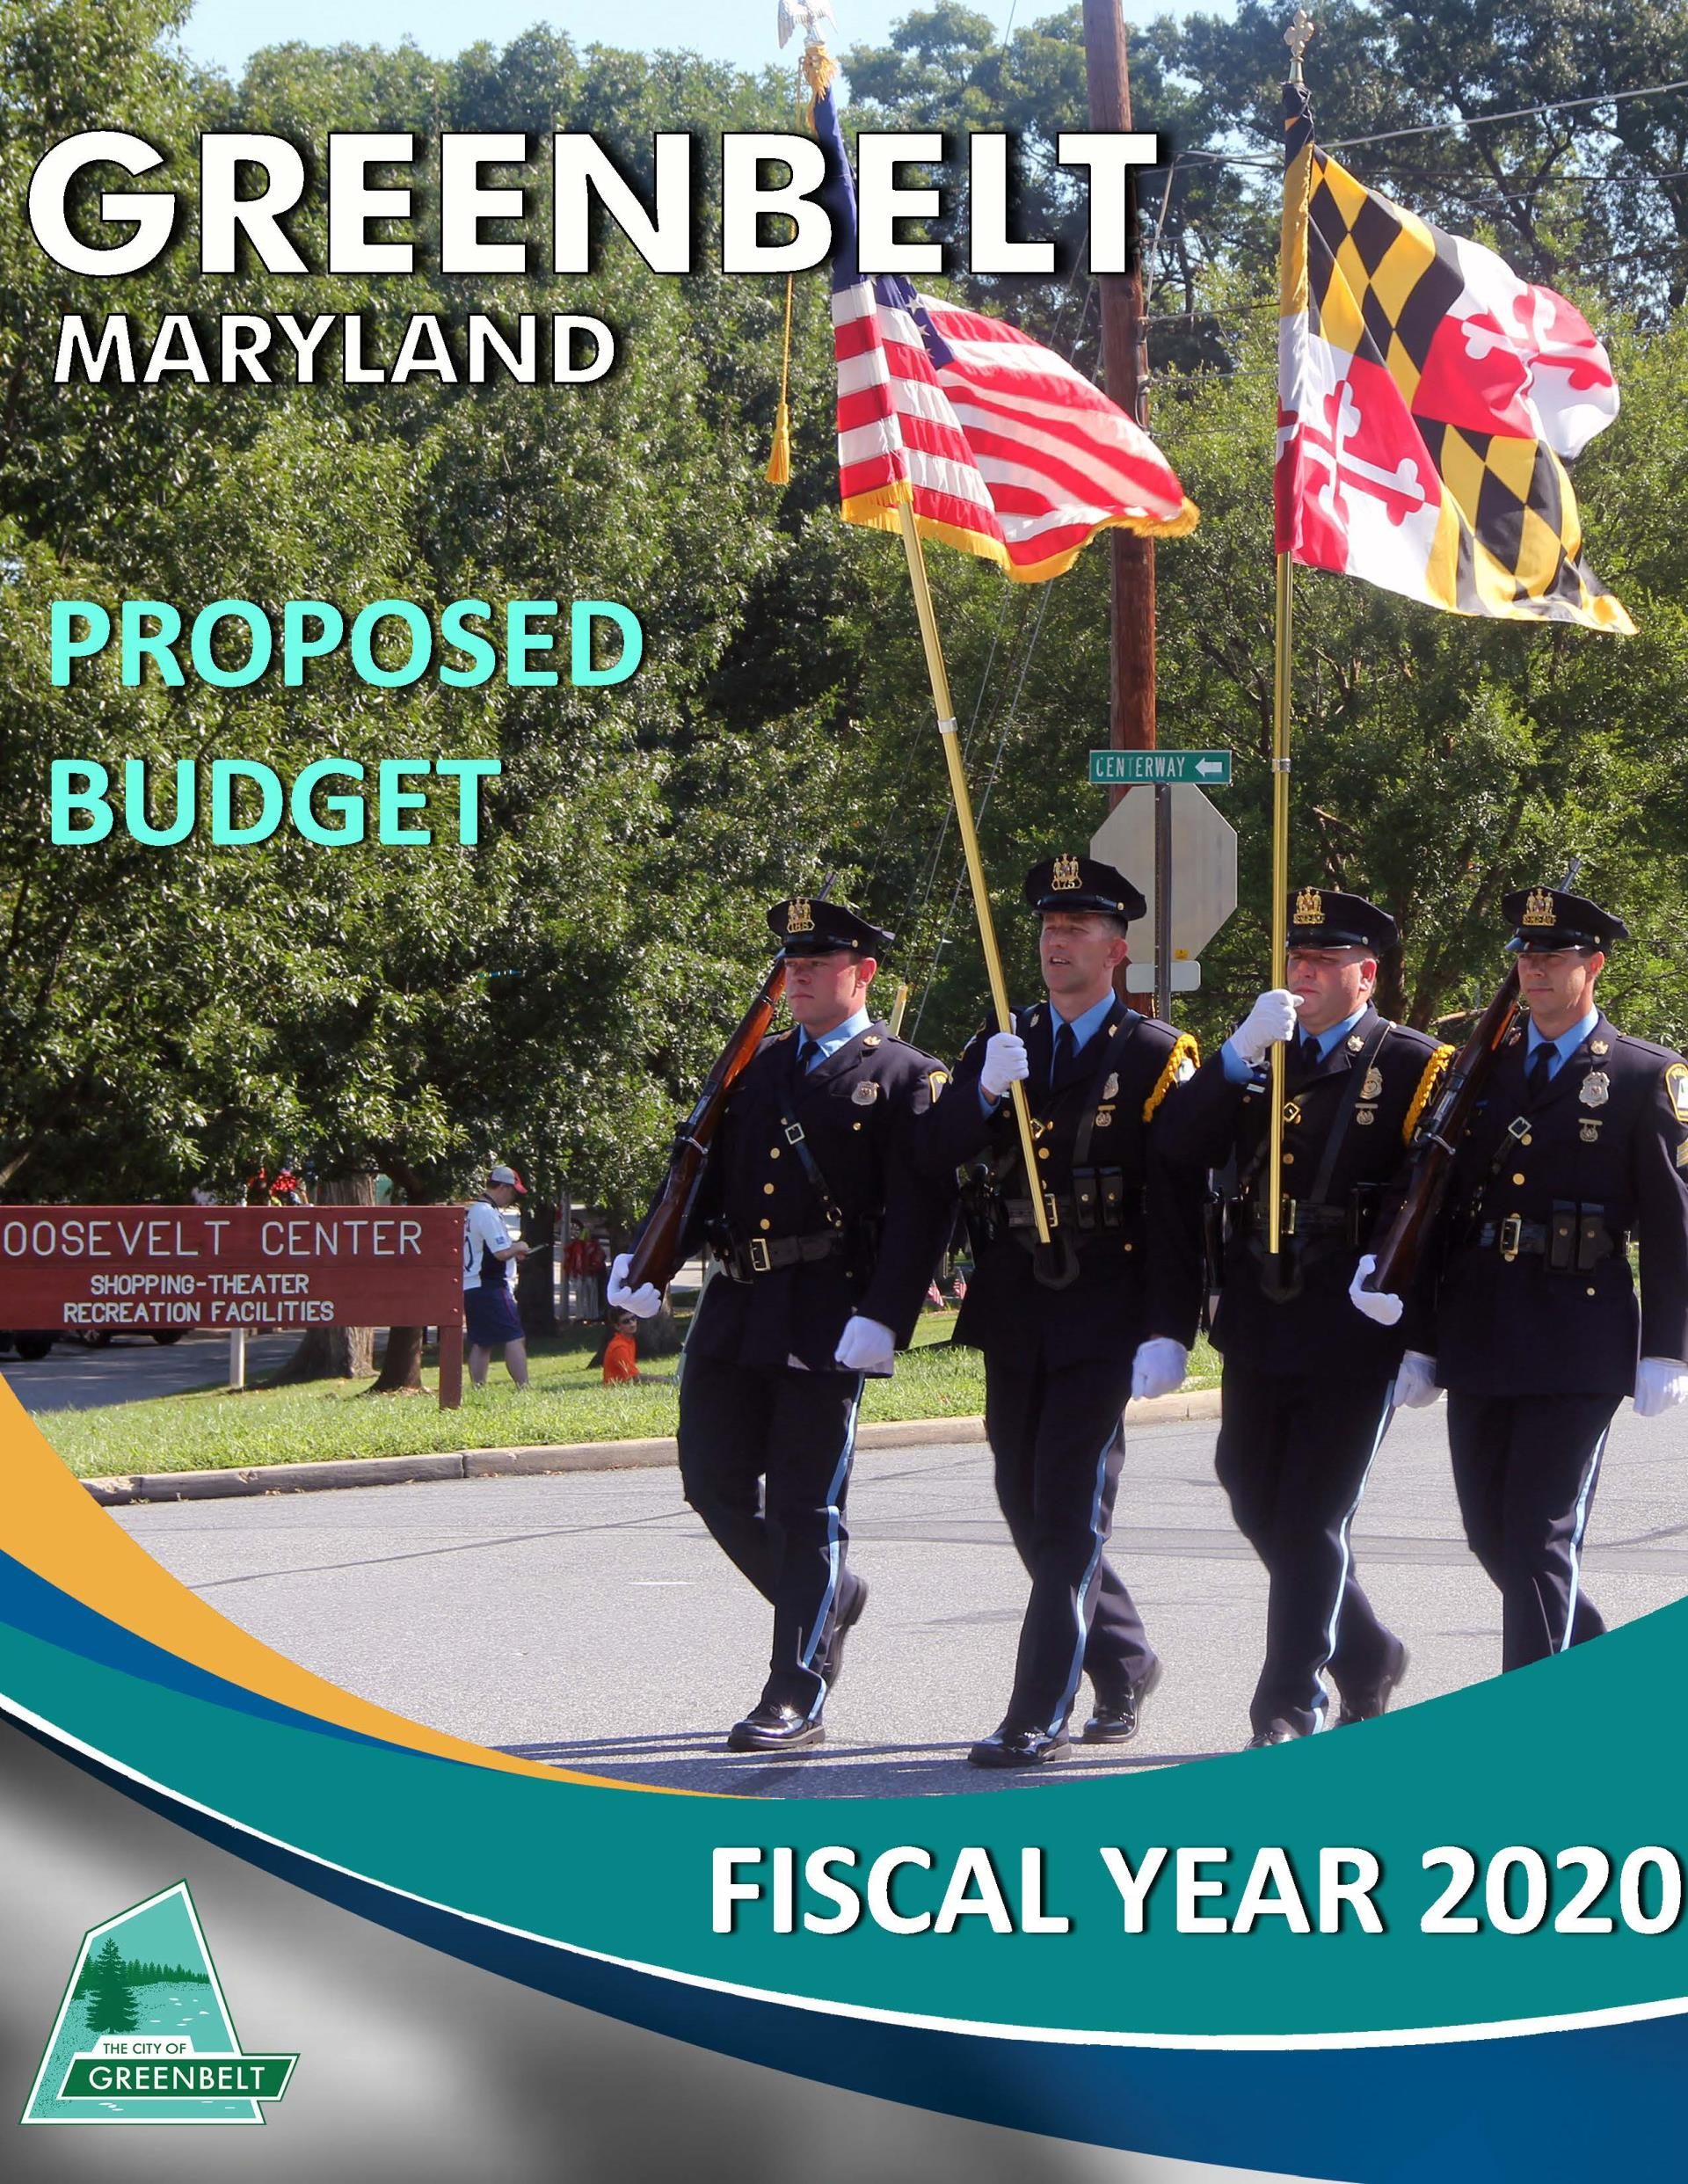 FY 2020 Proposed Budget now available!